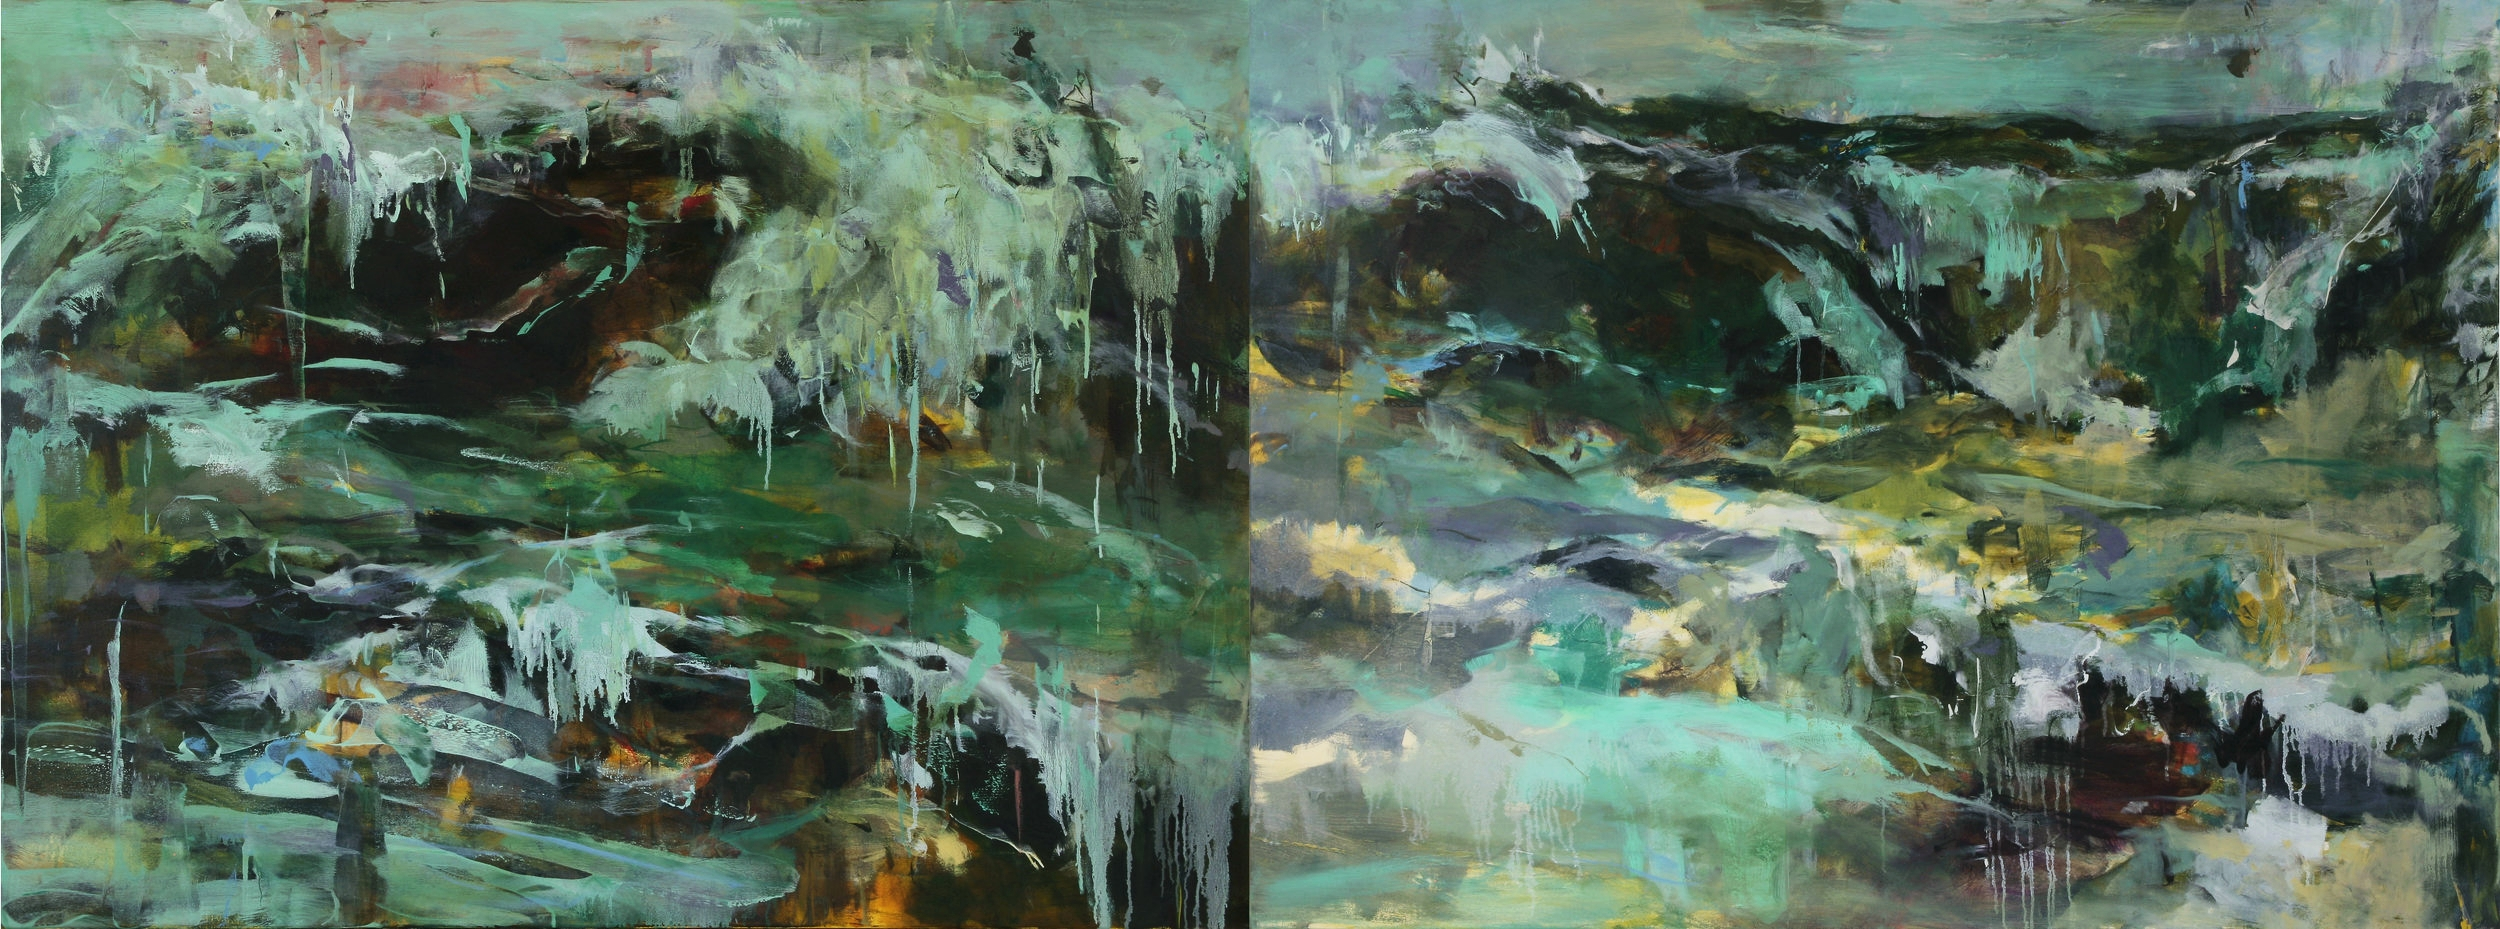 Tides that Bind 40'' x 108'' oil on canvas